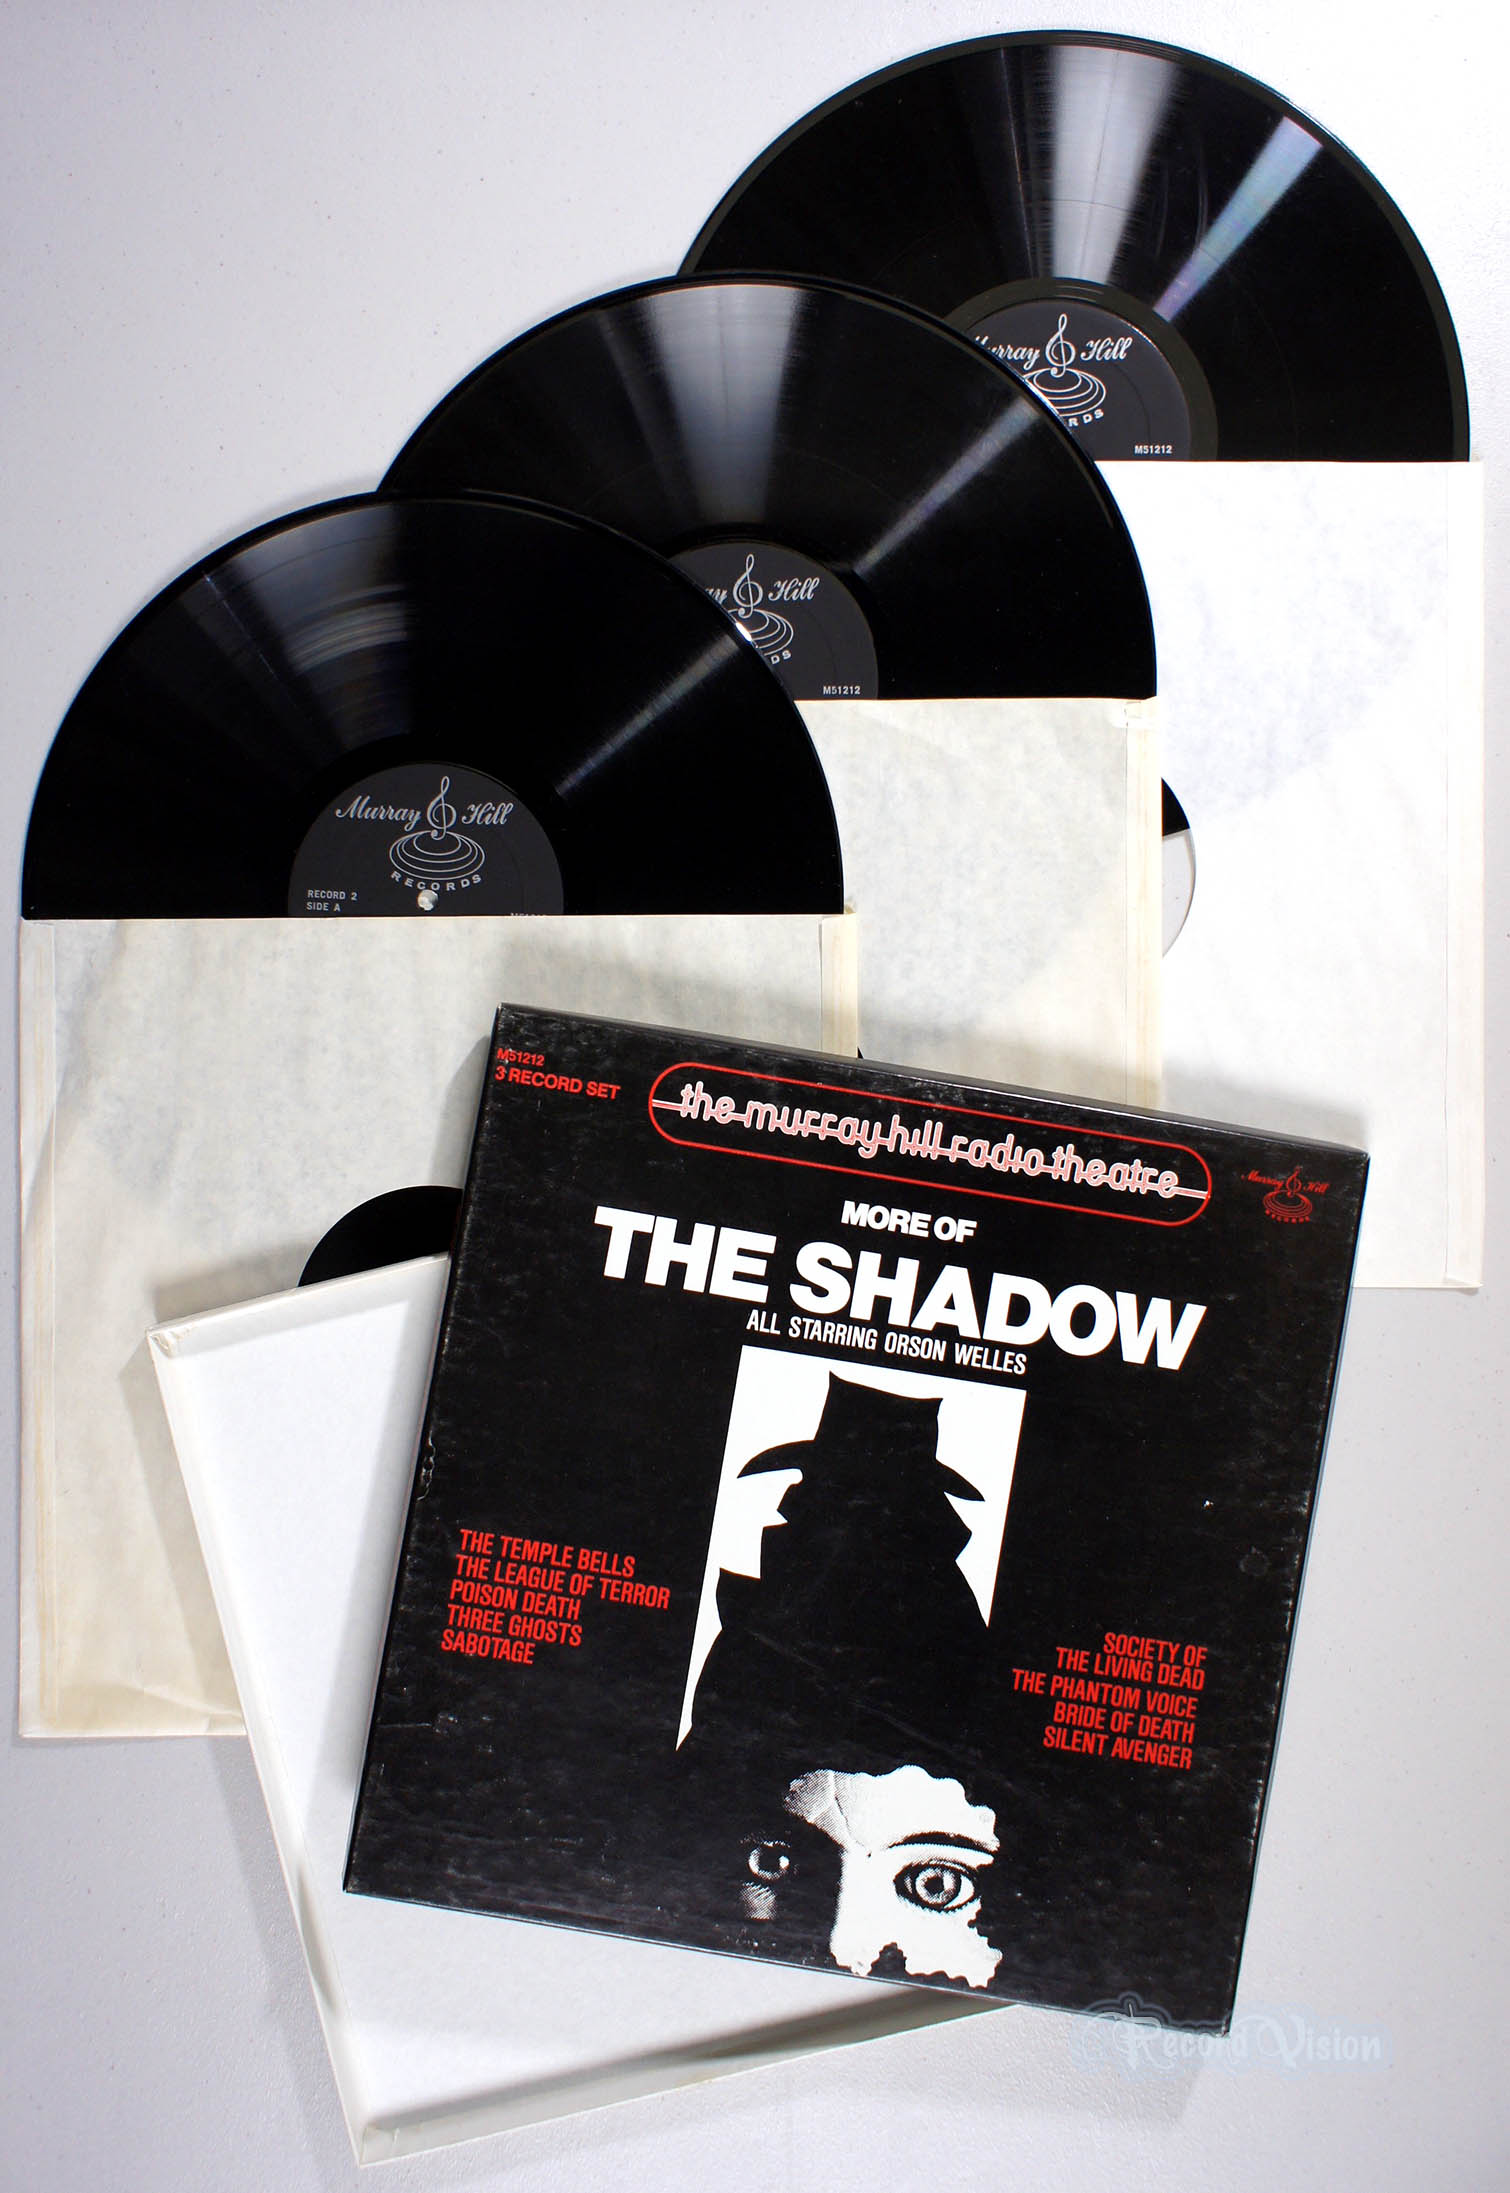 ASSORTED (SOUNDTRACK) - More of The Shadow - Coffret 33T